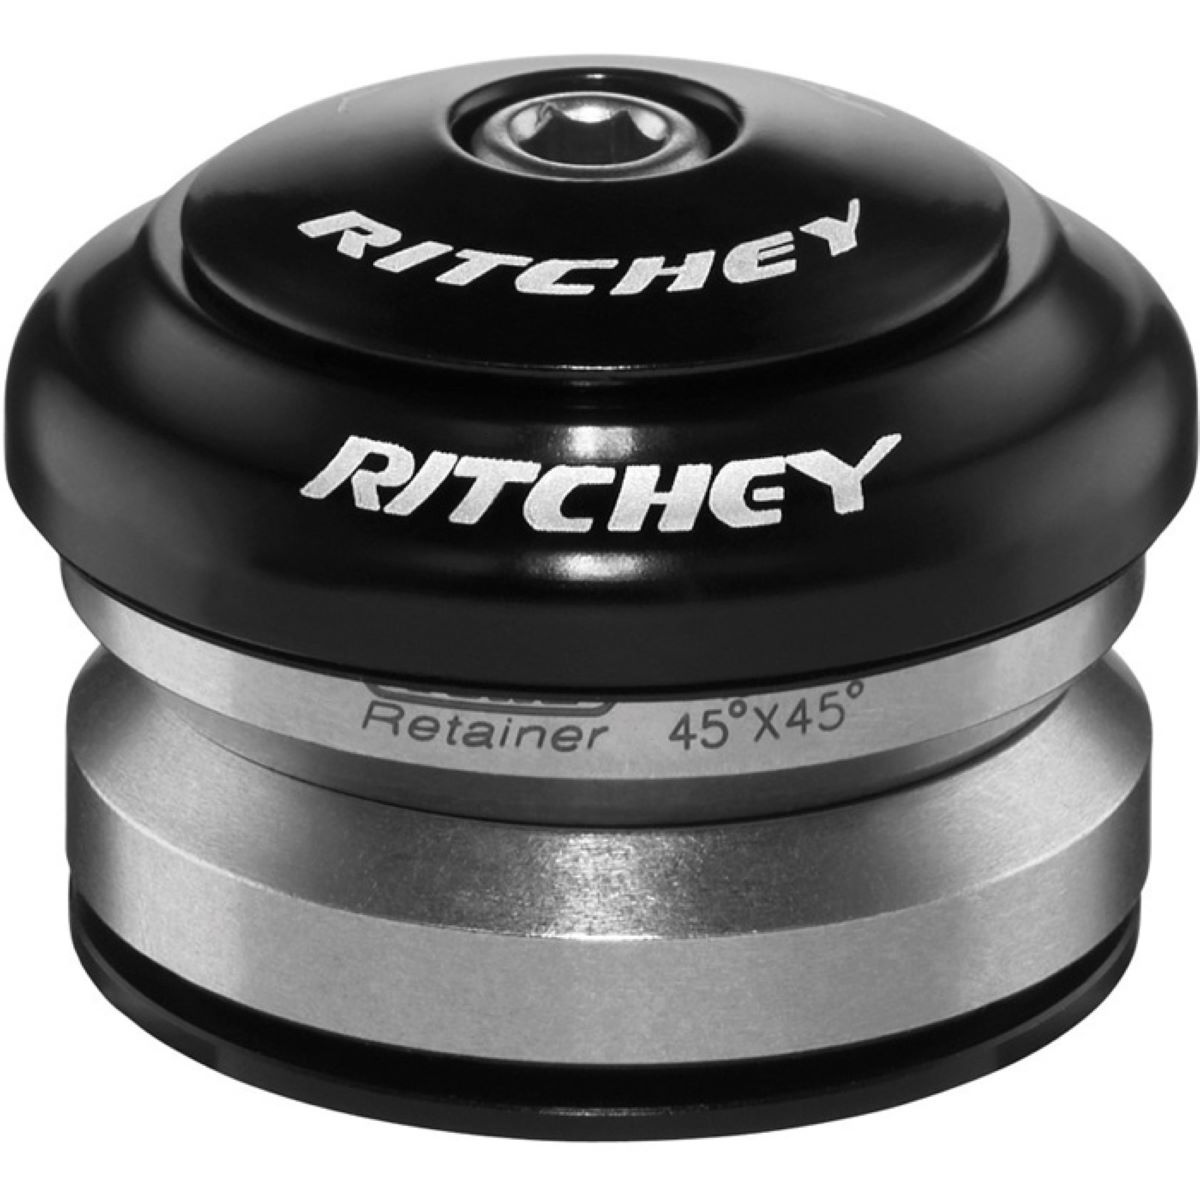 Ritchey Comp Drop In Headset - 1.1/8 - 1.5 Tapere Black  Headsets